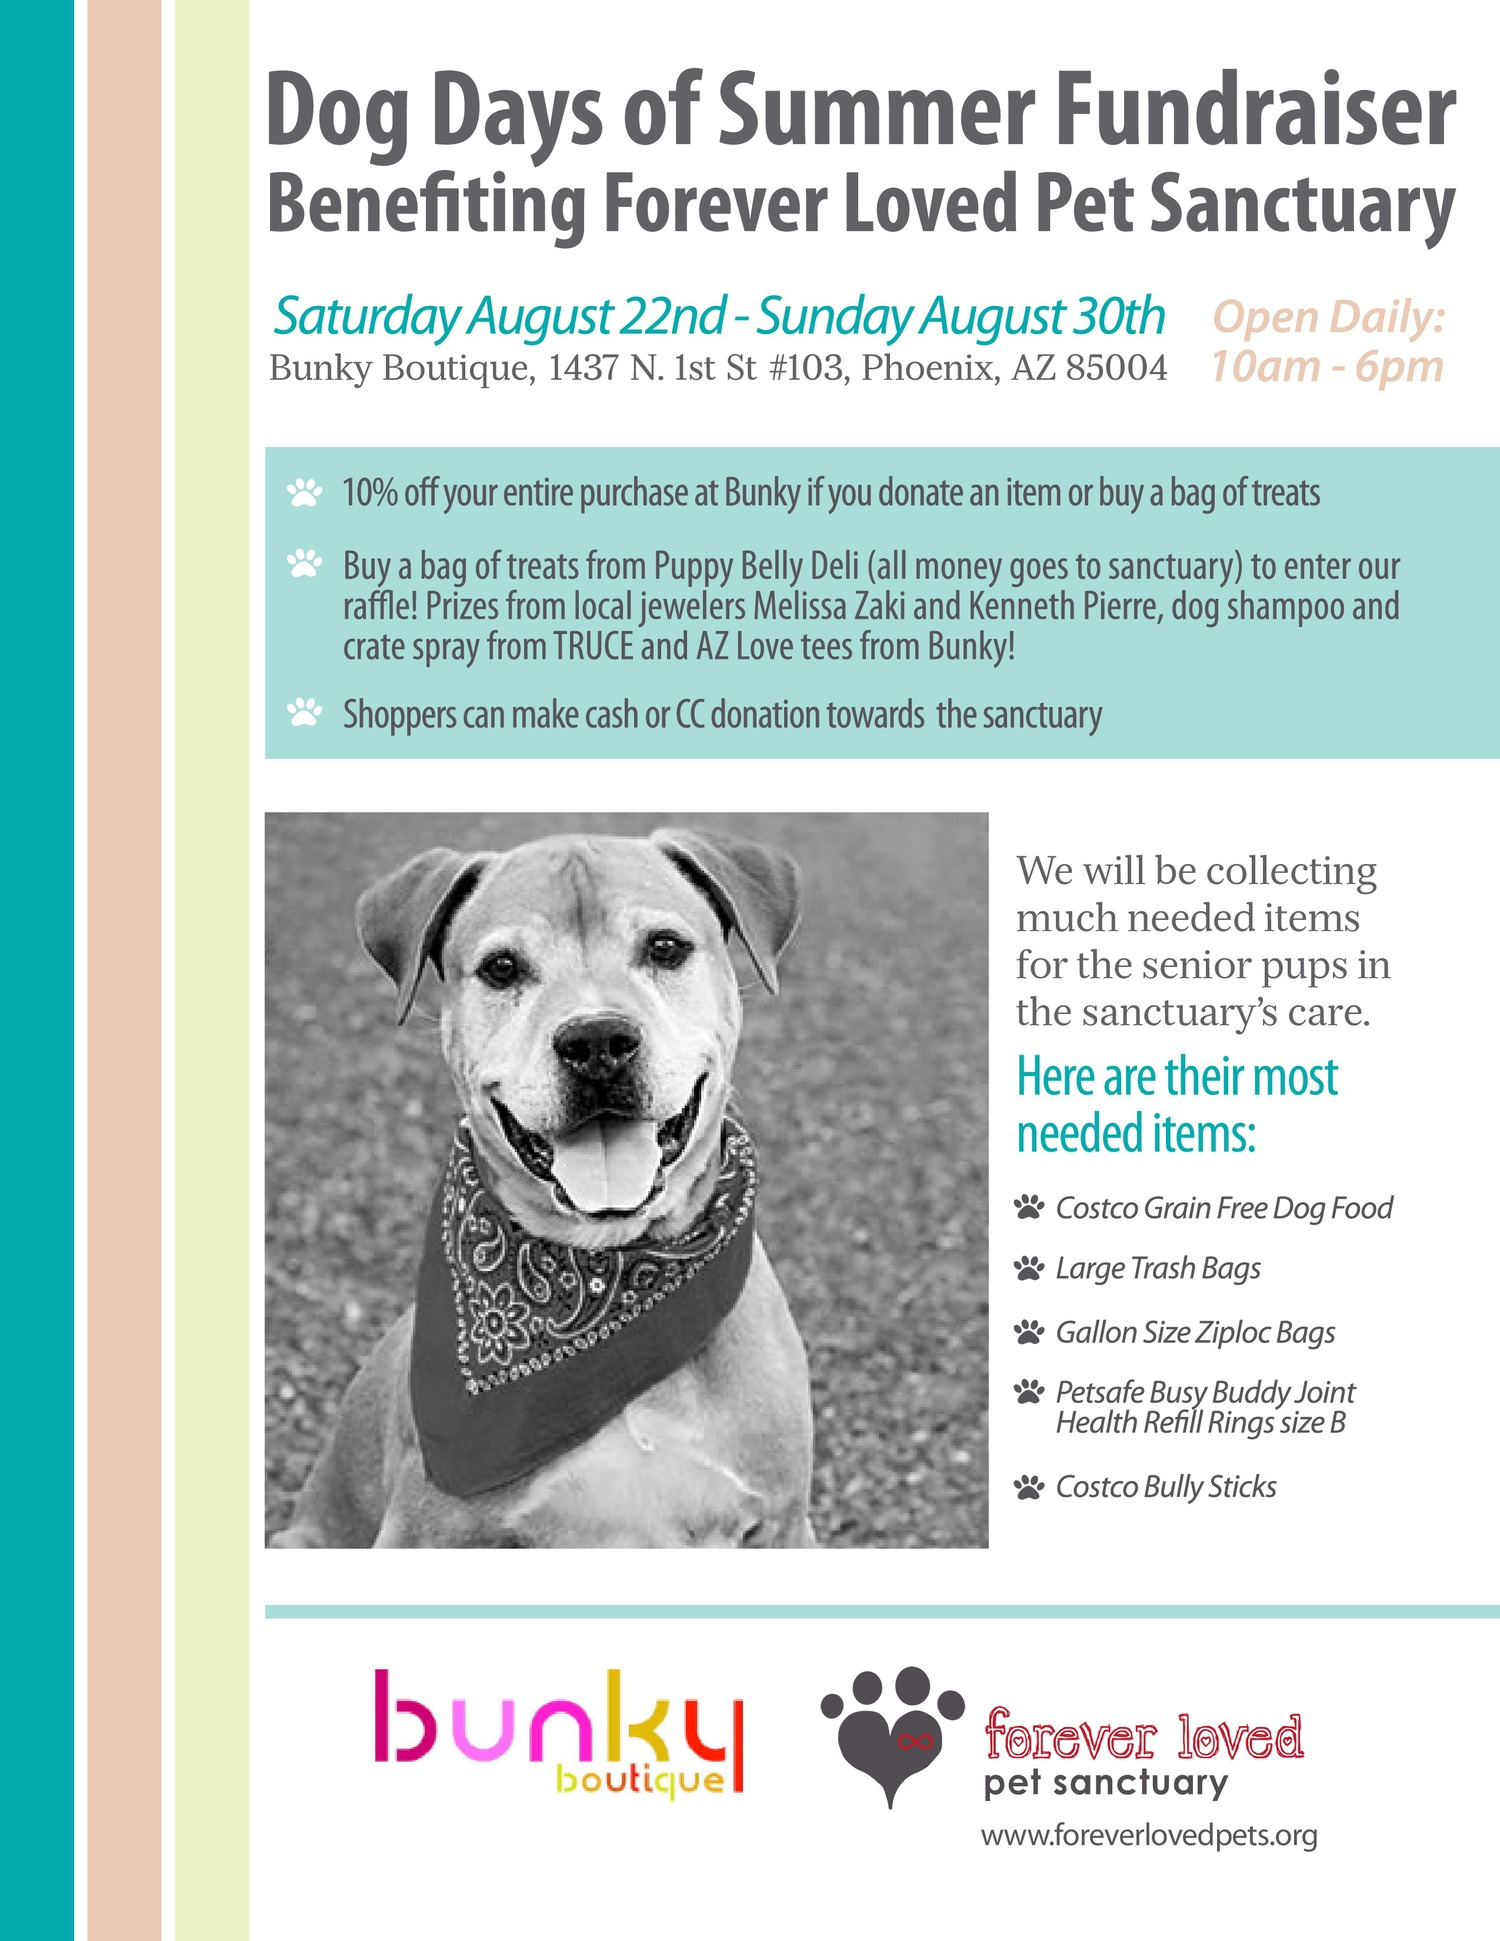 Dog Days of Summer August 22nd-30th — bunky boutique